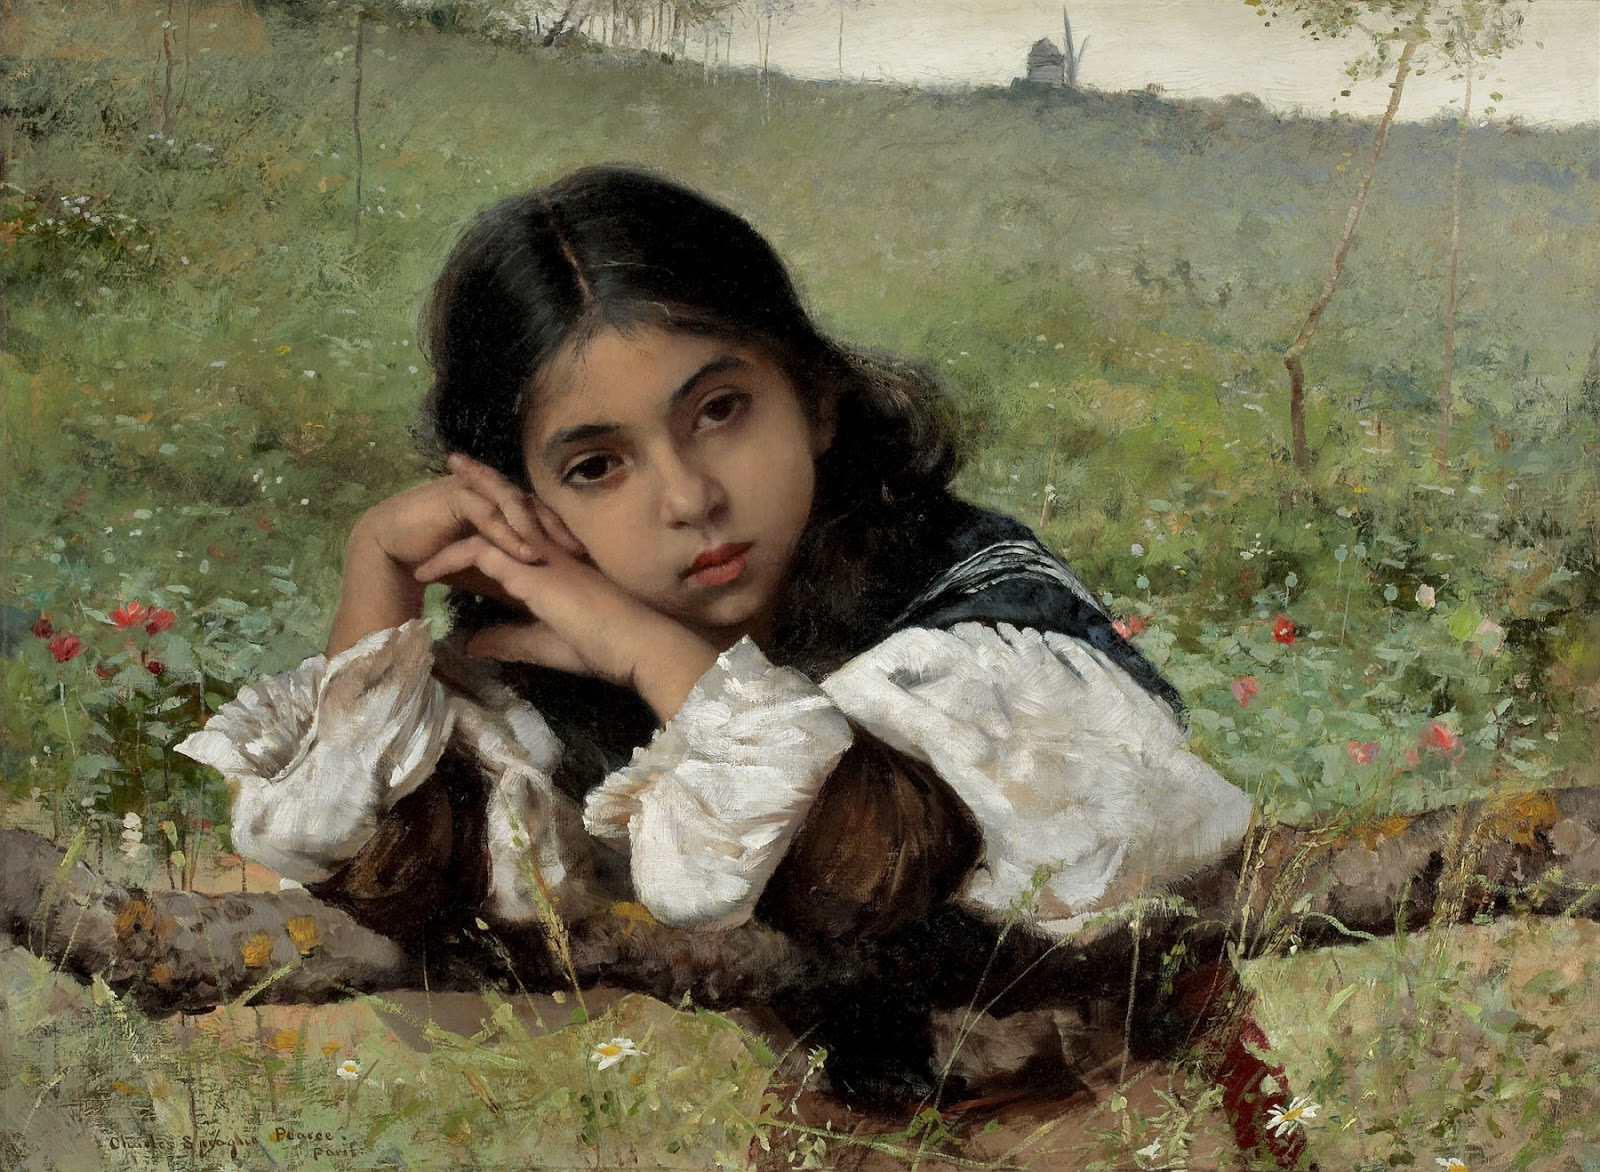 Charles  Sprague  Pearce  moments  of  thoughtfulness